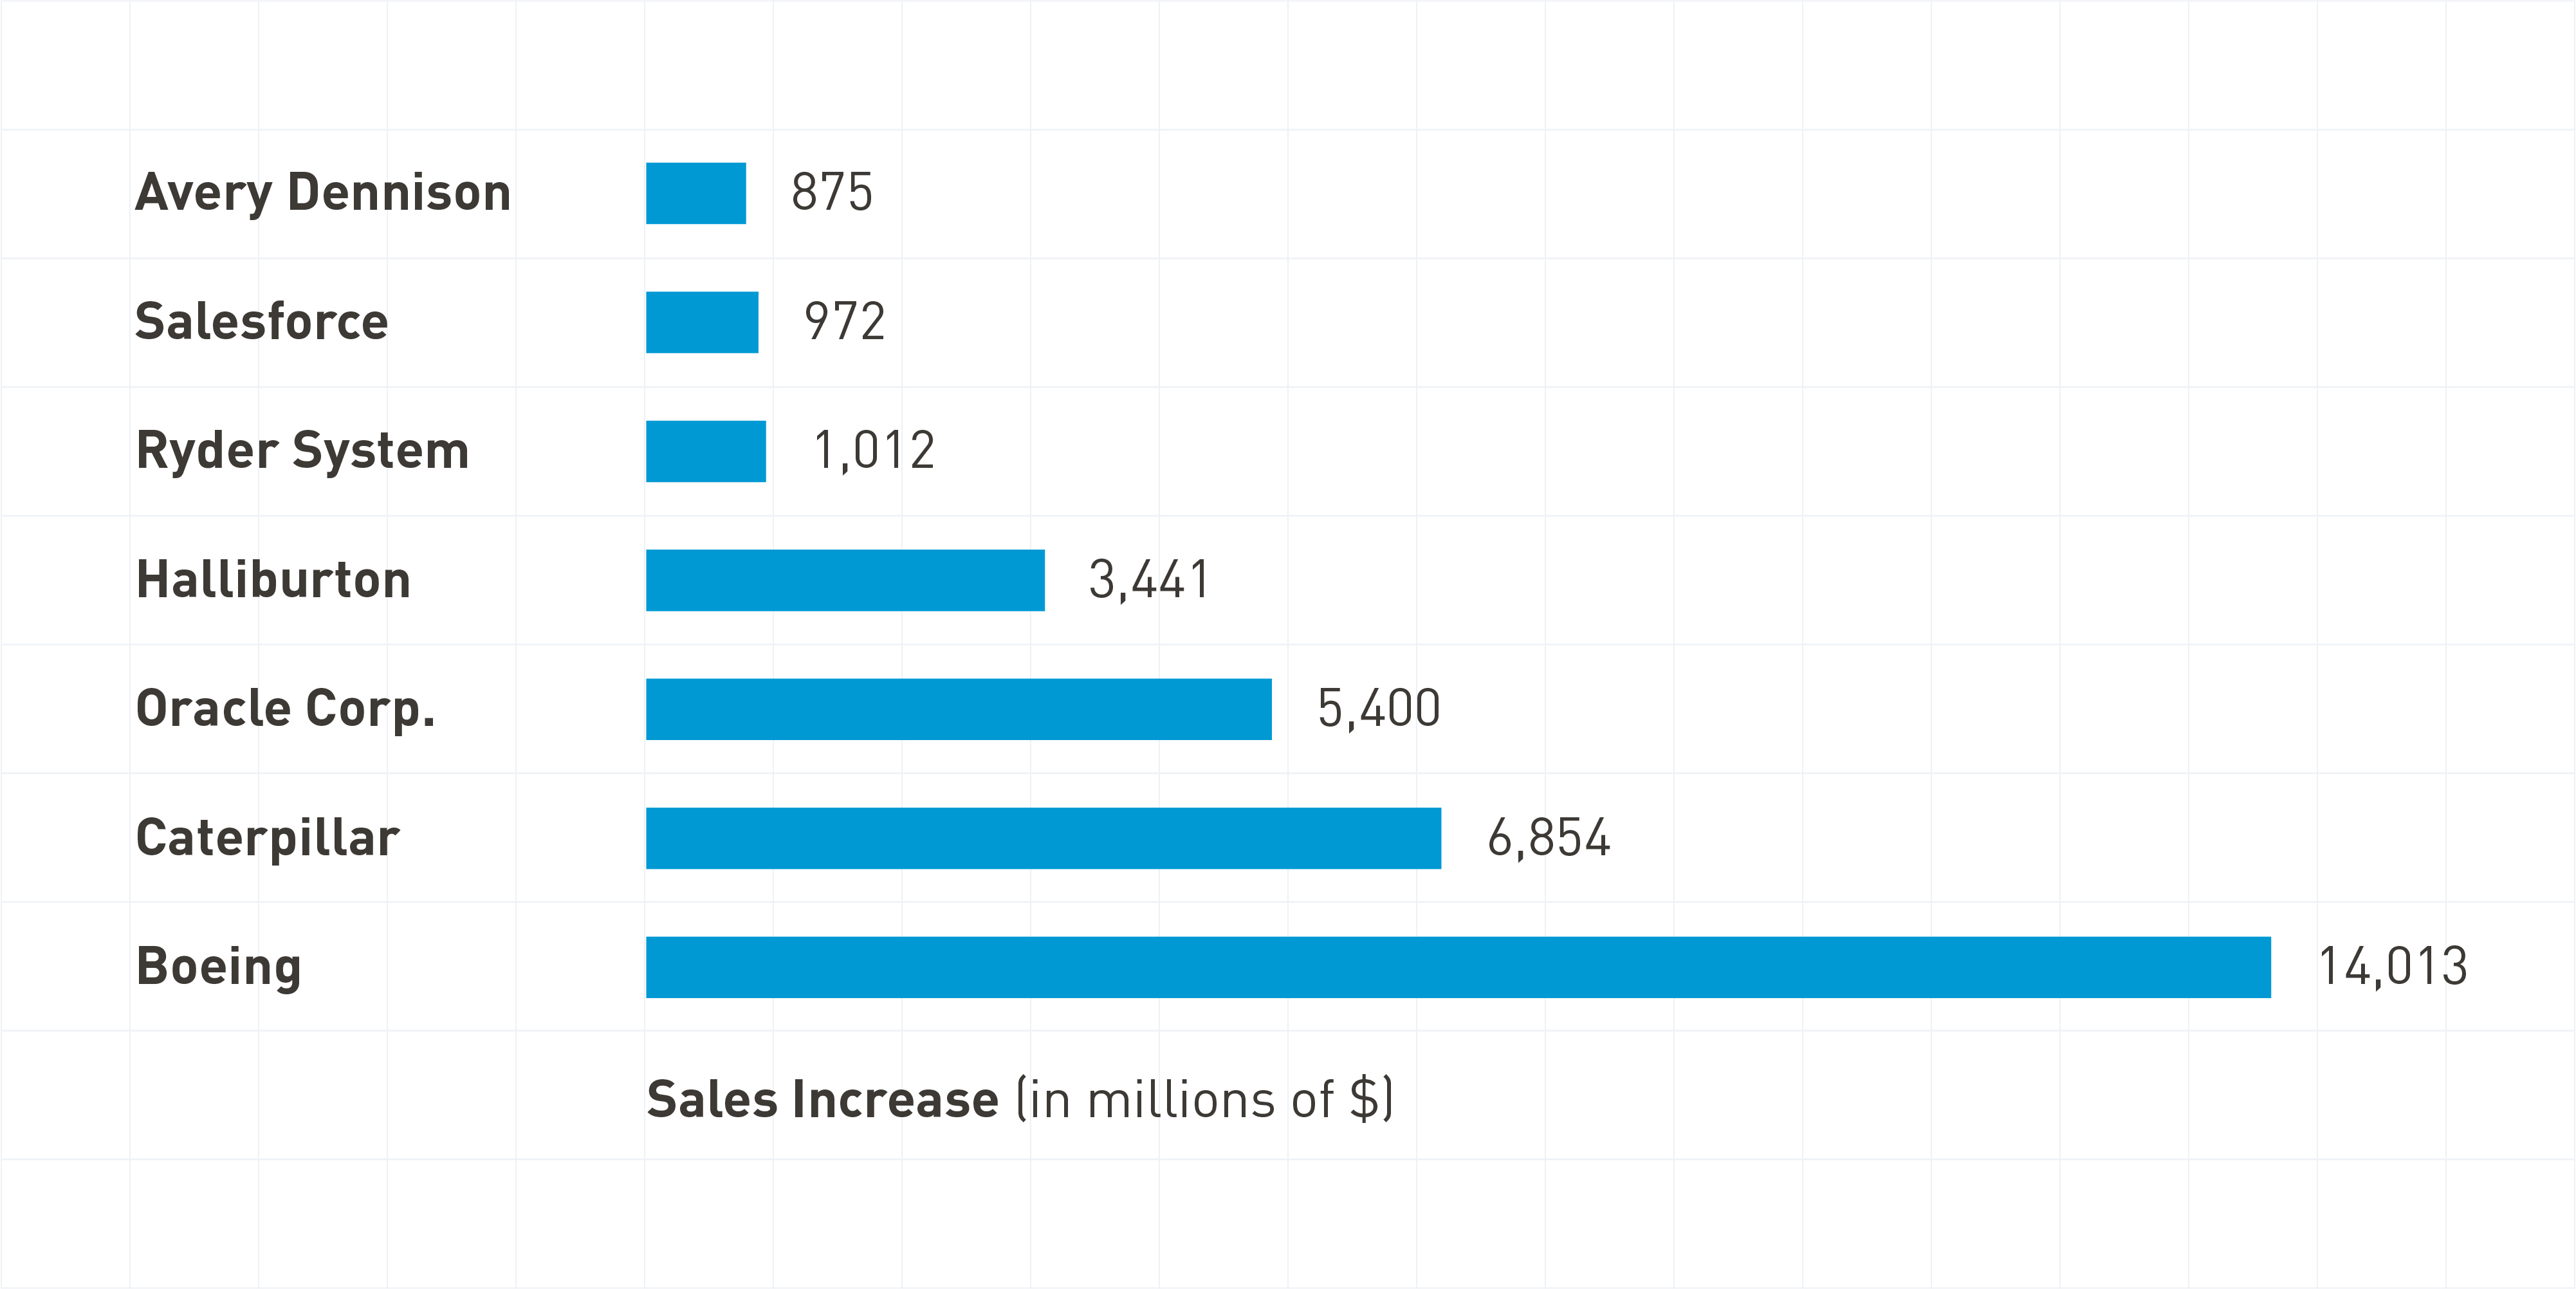 bar chart showing increase of sales from select companies